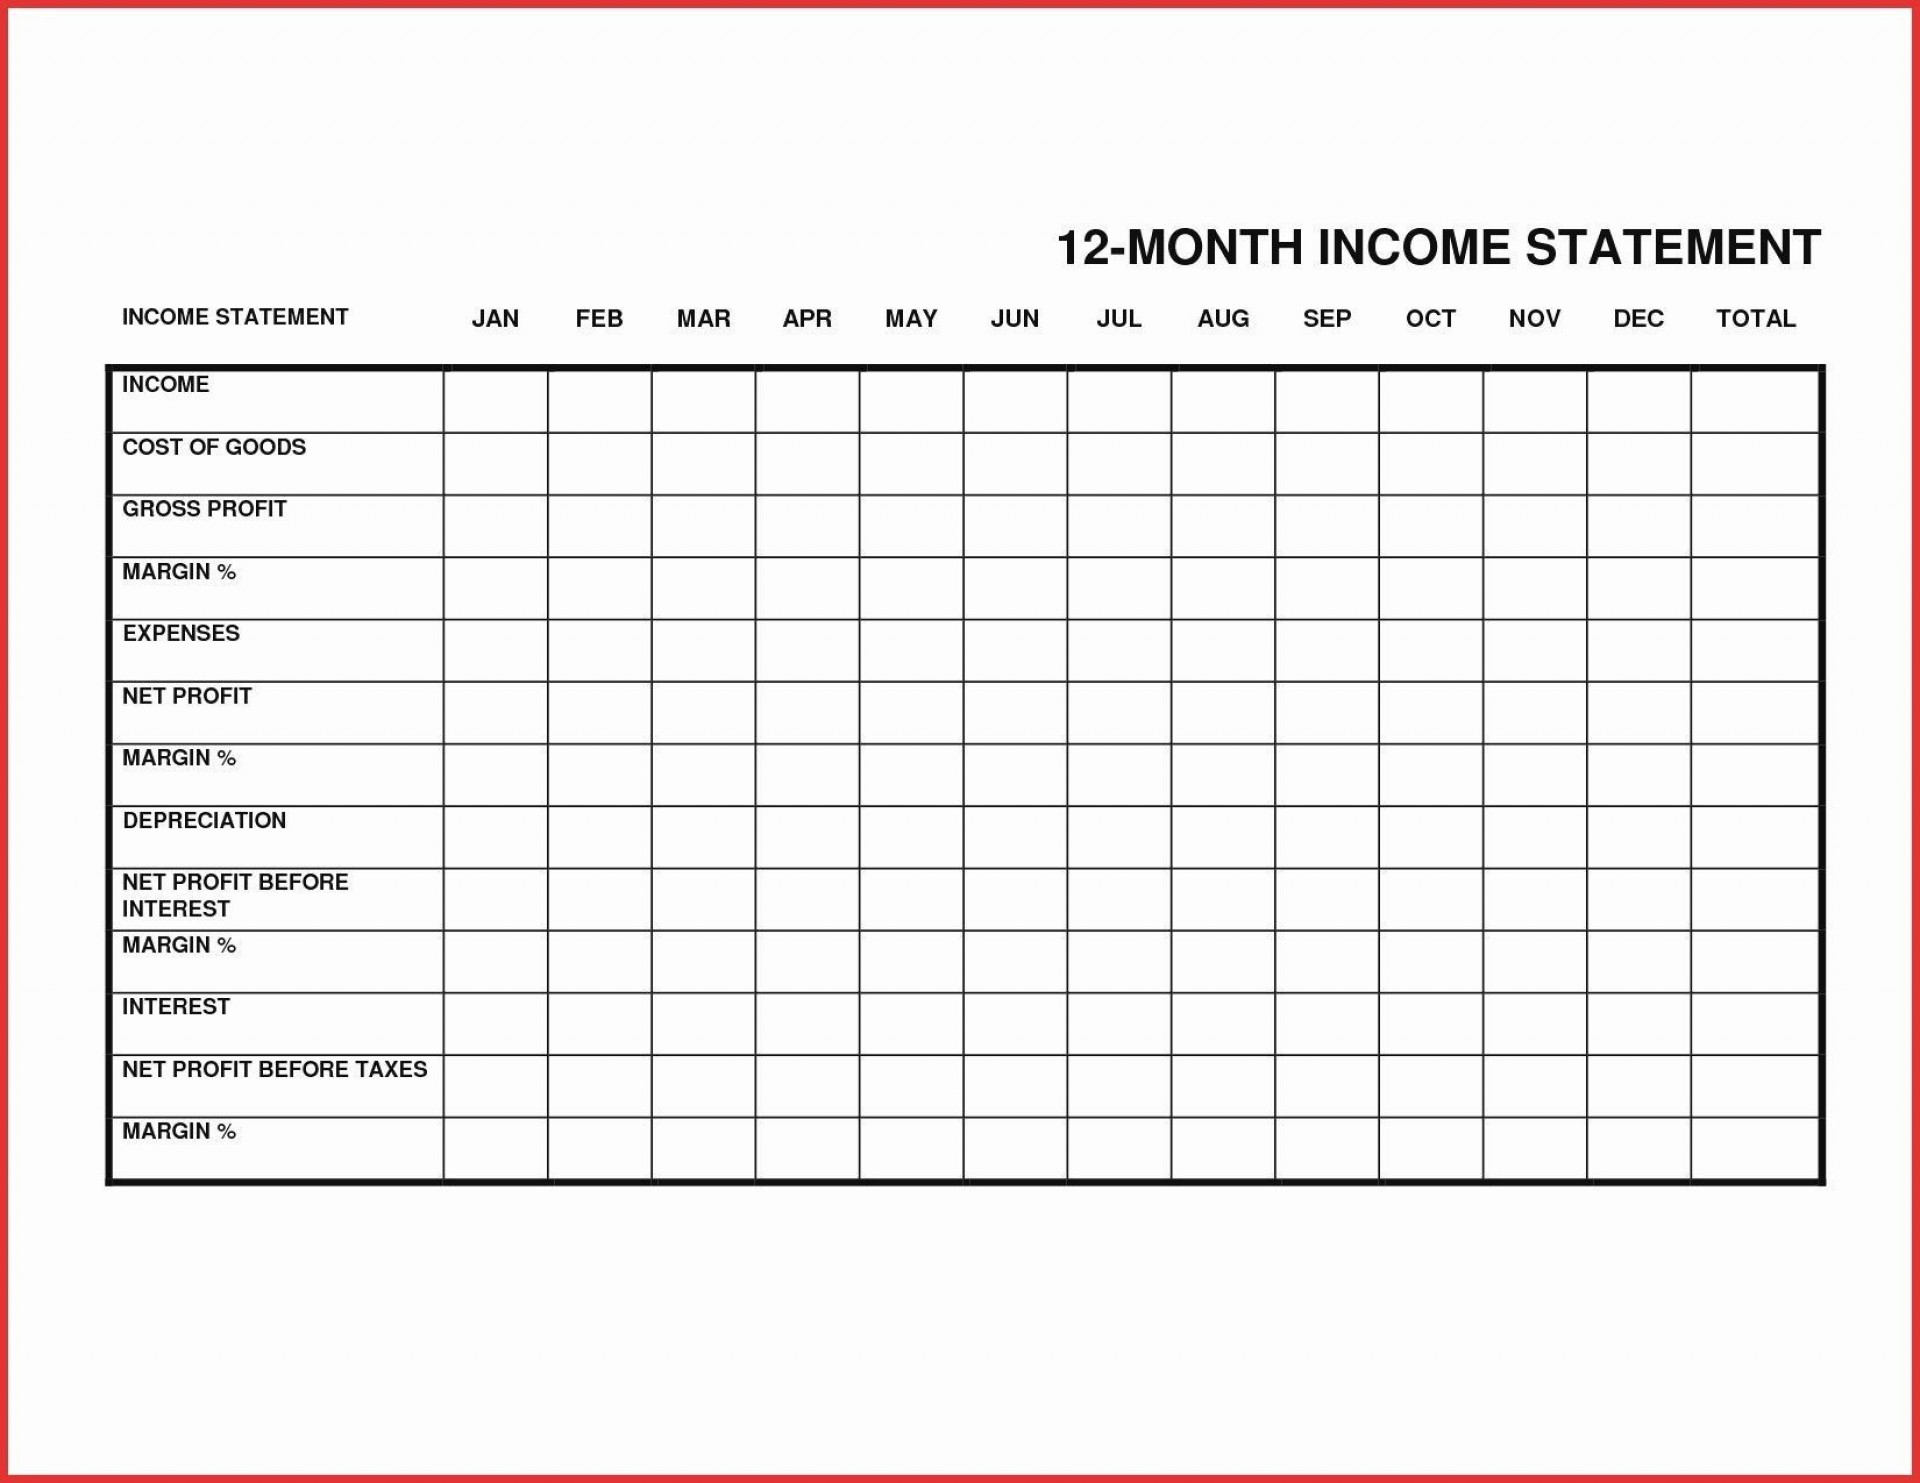 000 Best Personal Income Expense Statement Template Excel Sample 1920